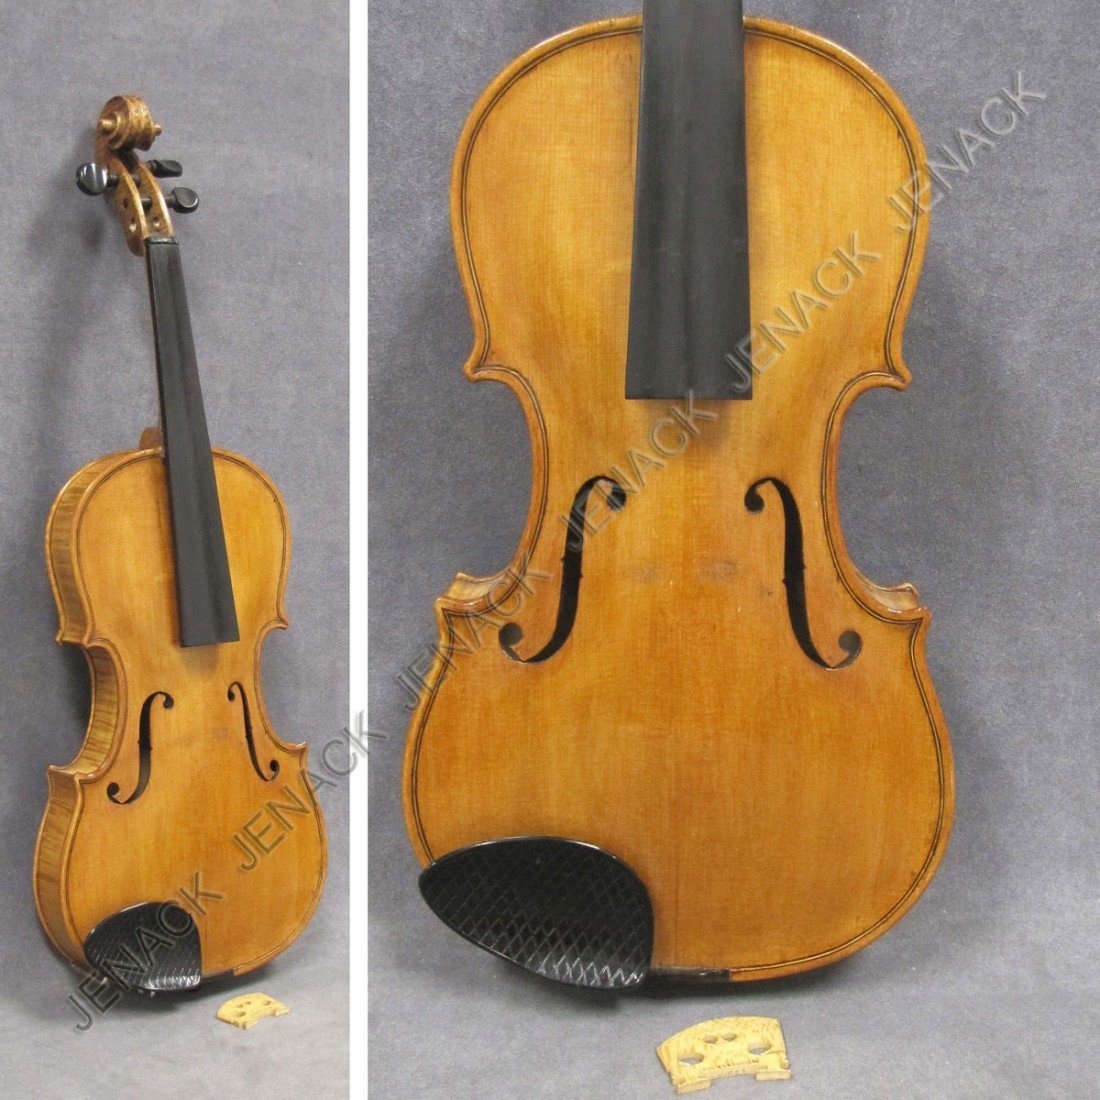 13: MAURIEIUS WEISS/NEW YORK 1948 LABELED VIOLIN